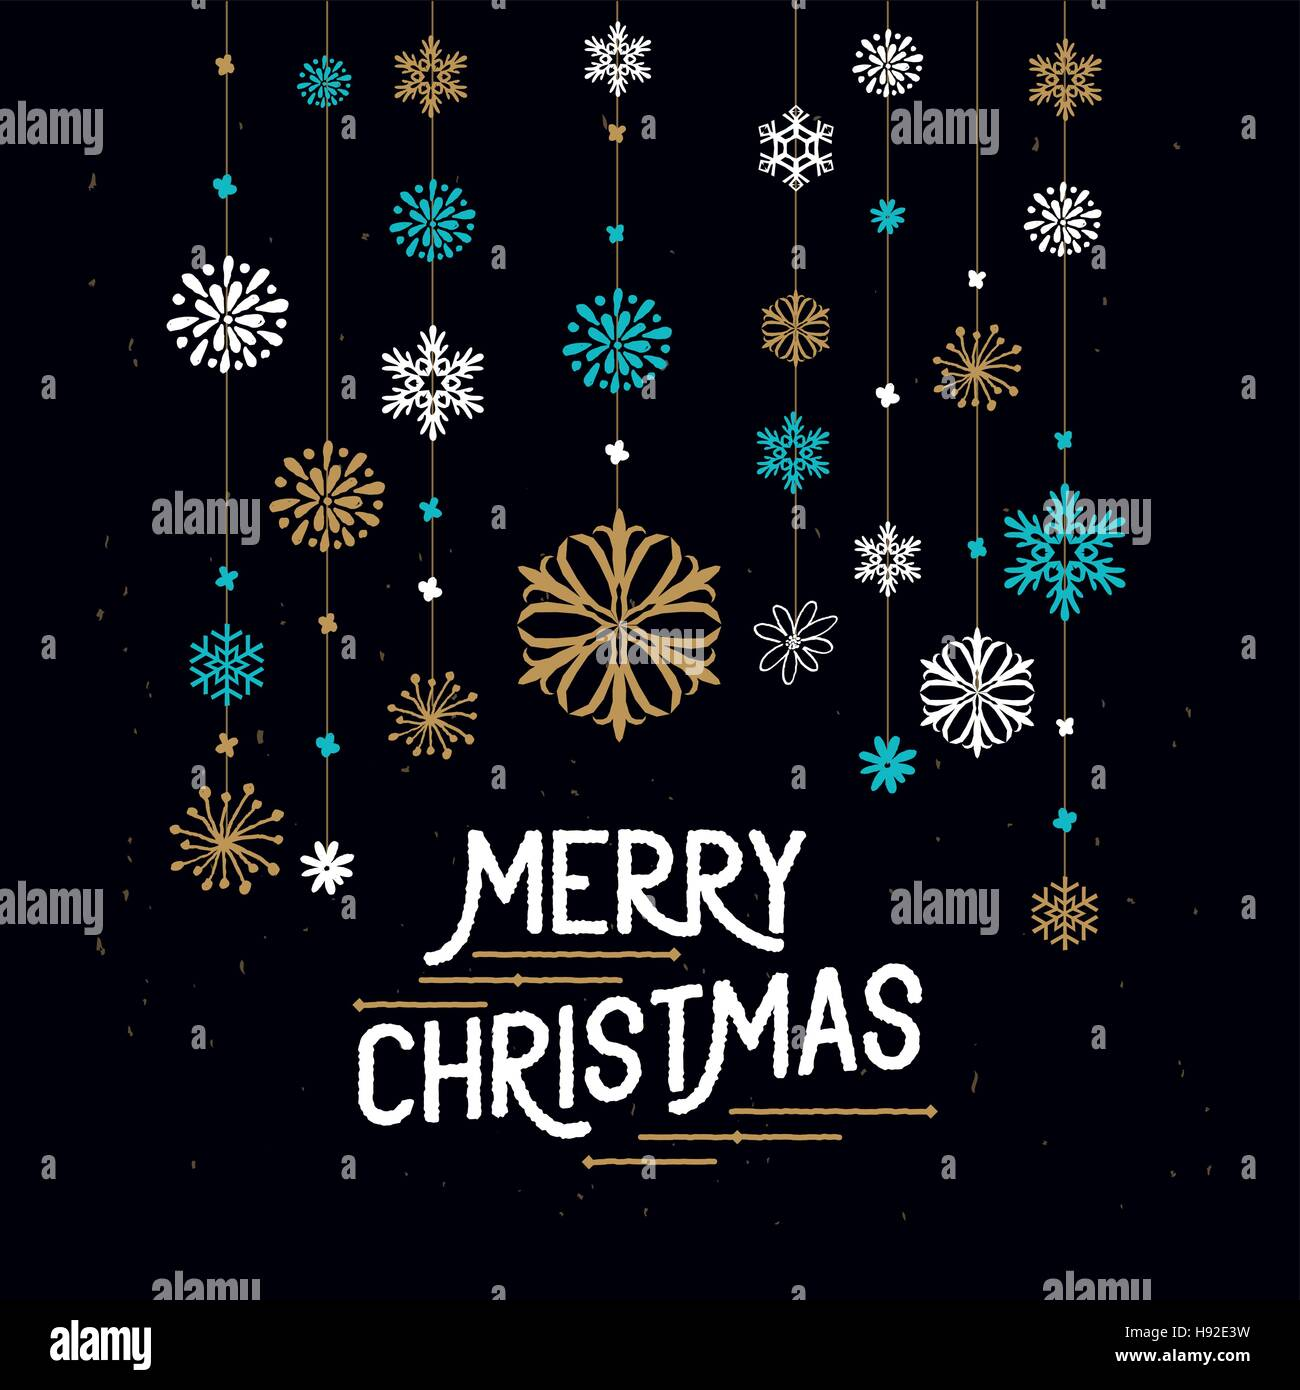 Merry Christmas Decorations. Hanging snowflakes and merry christmas sign. Vector illustration. - Stock Image